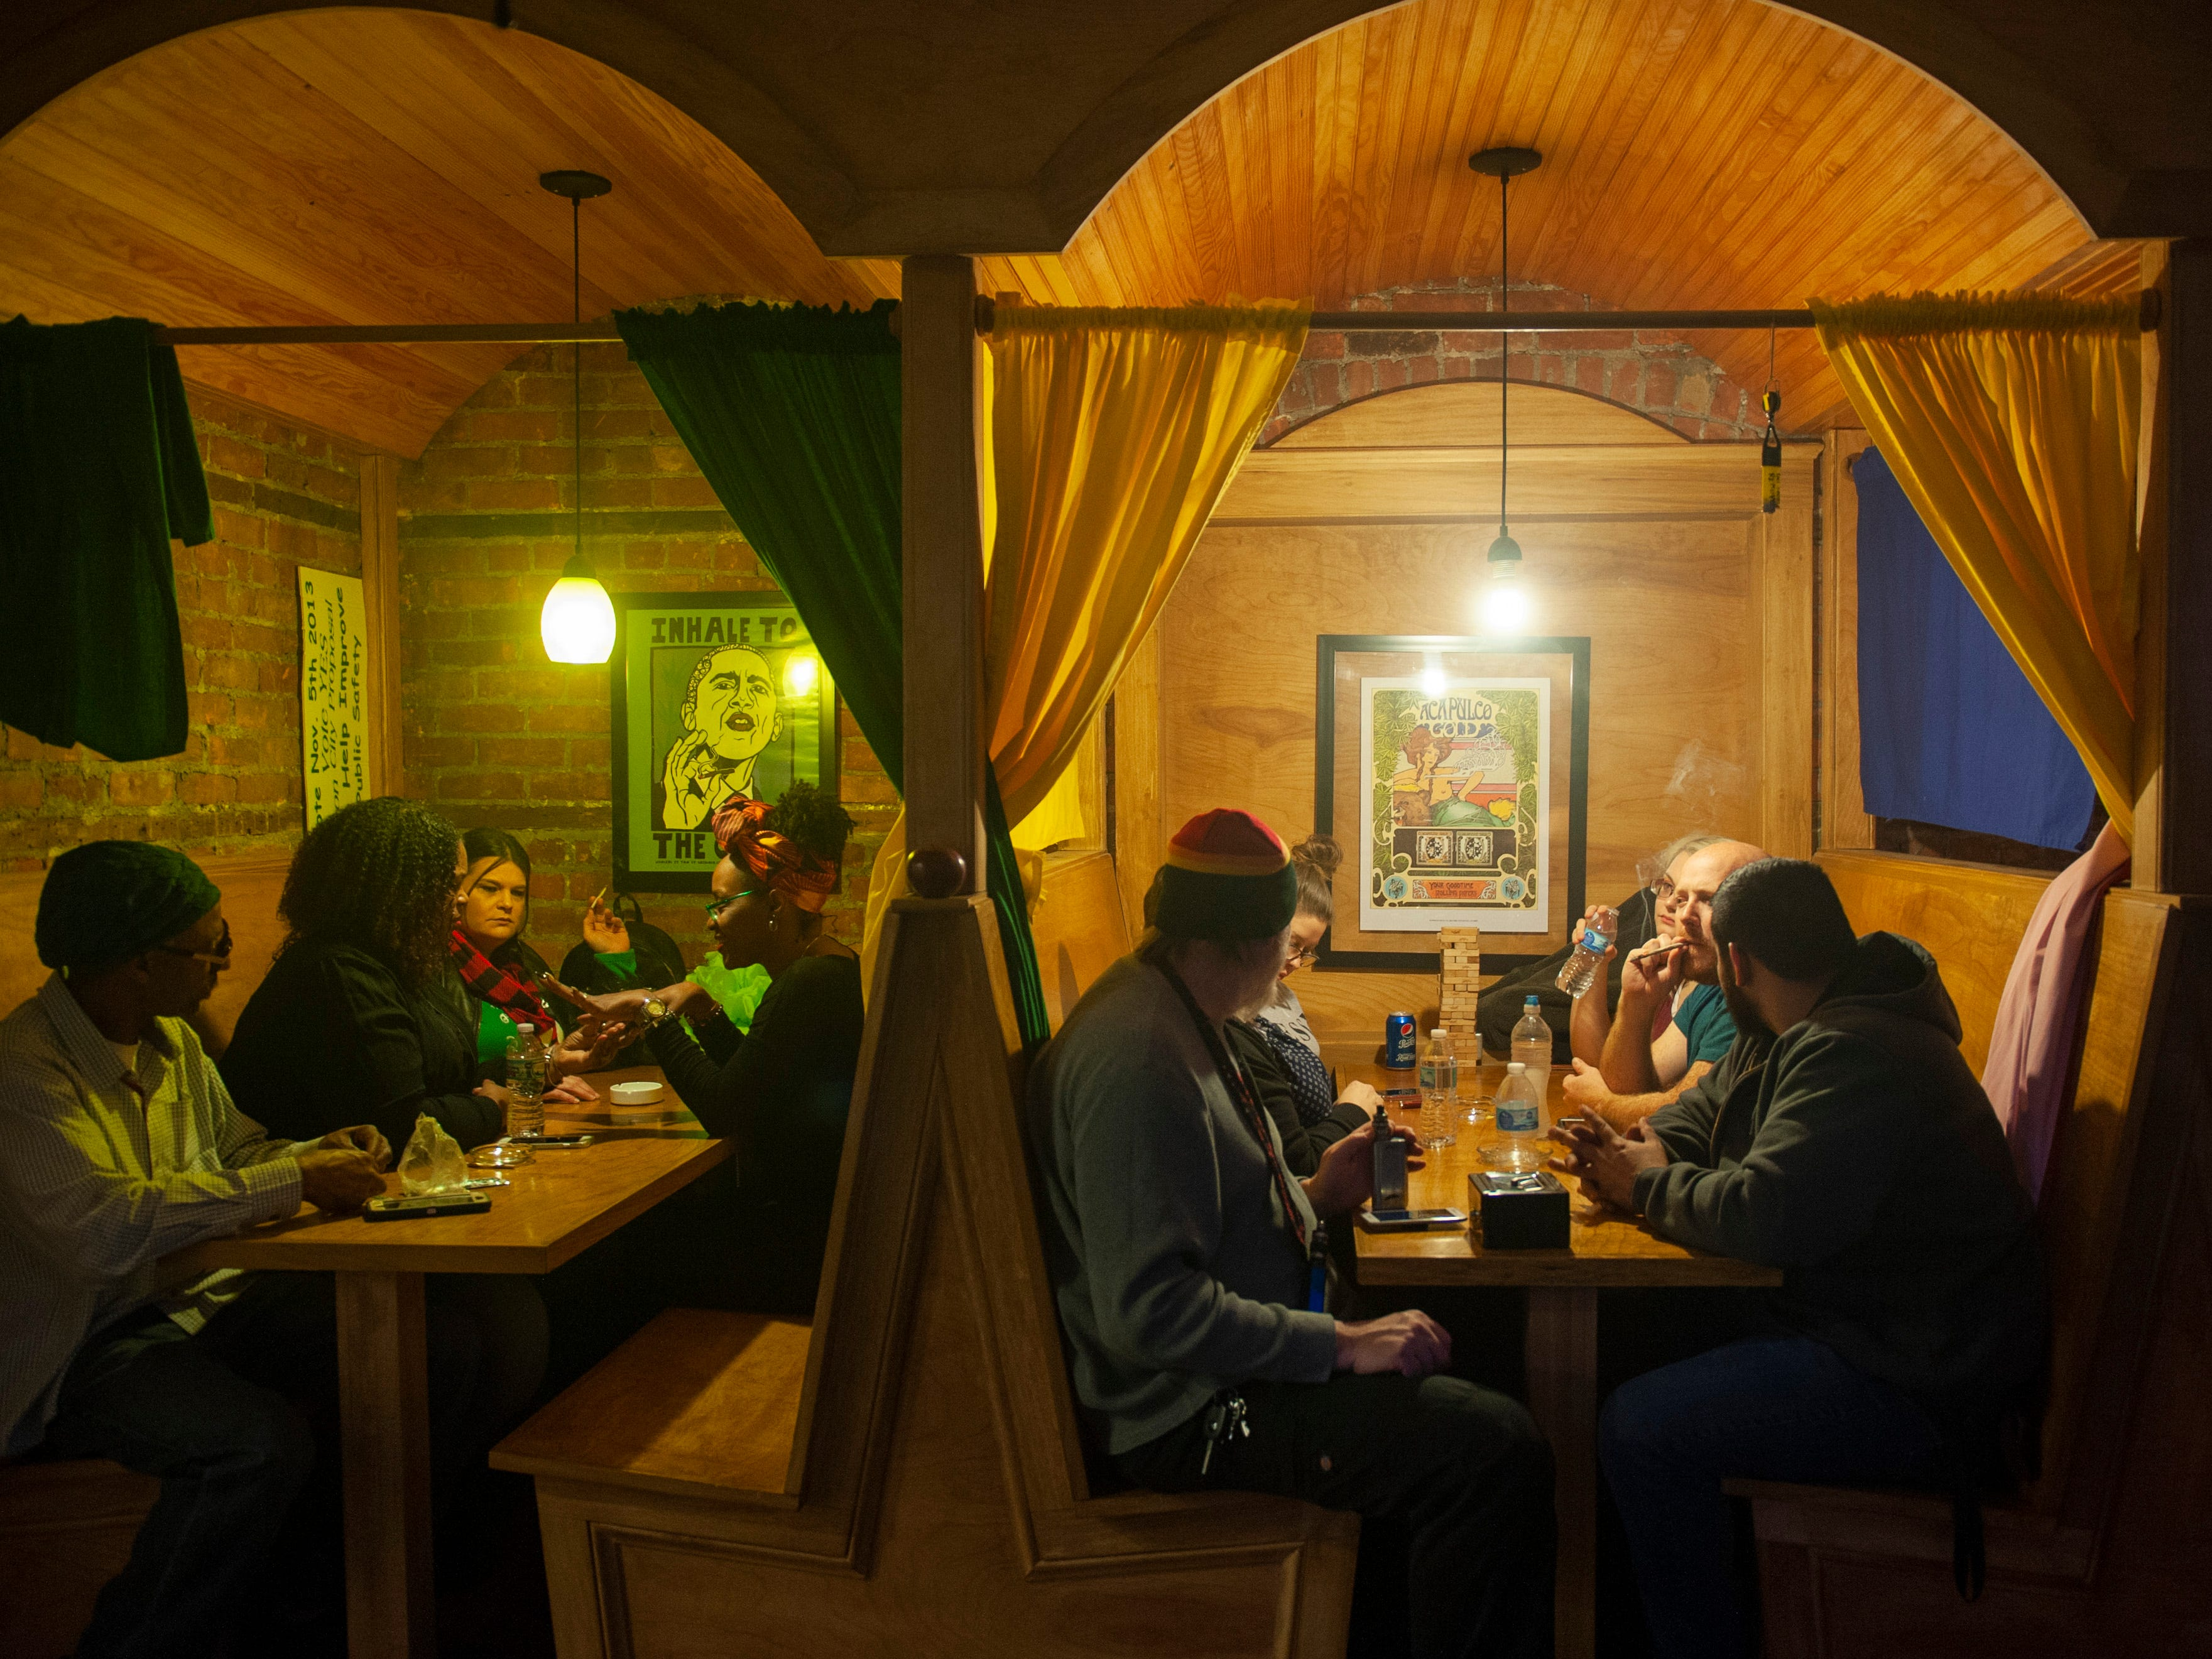 """Guests at """"The Art of Cannabis"""" event at the Cannabis Counsel in Detroit hang out in restaurant-style booths smoking marijuana and waiting for the festivities to begin on Saturday, Dec. 22, 2018."""